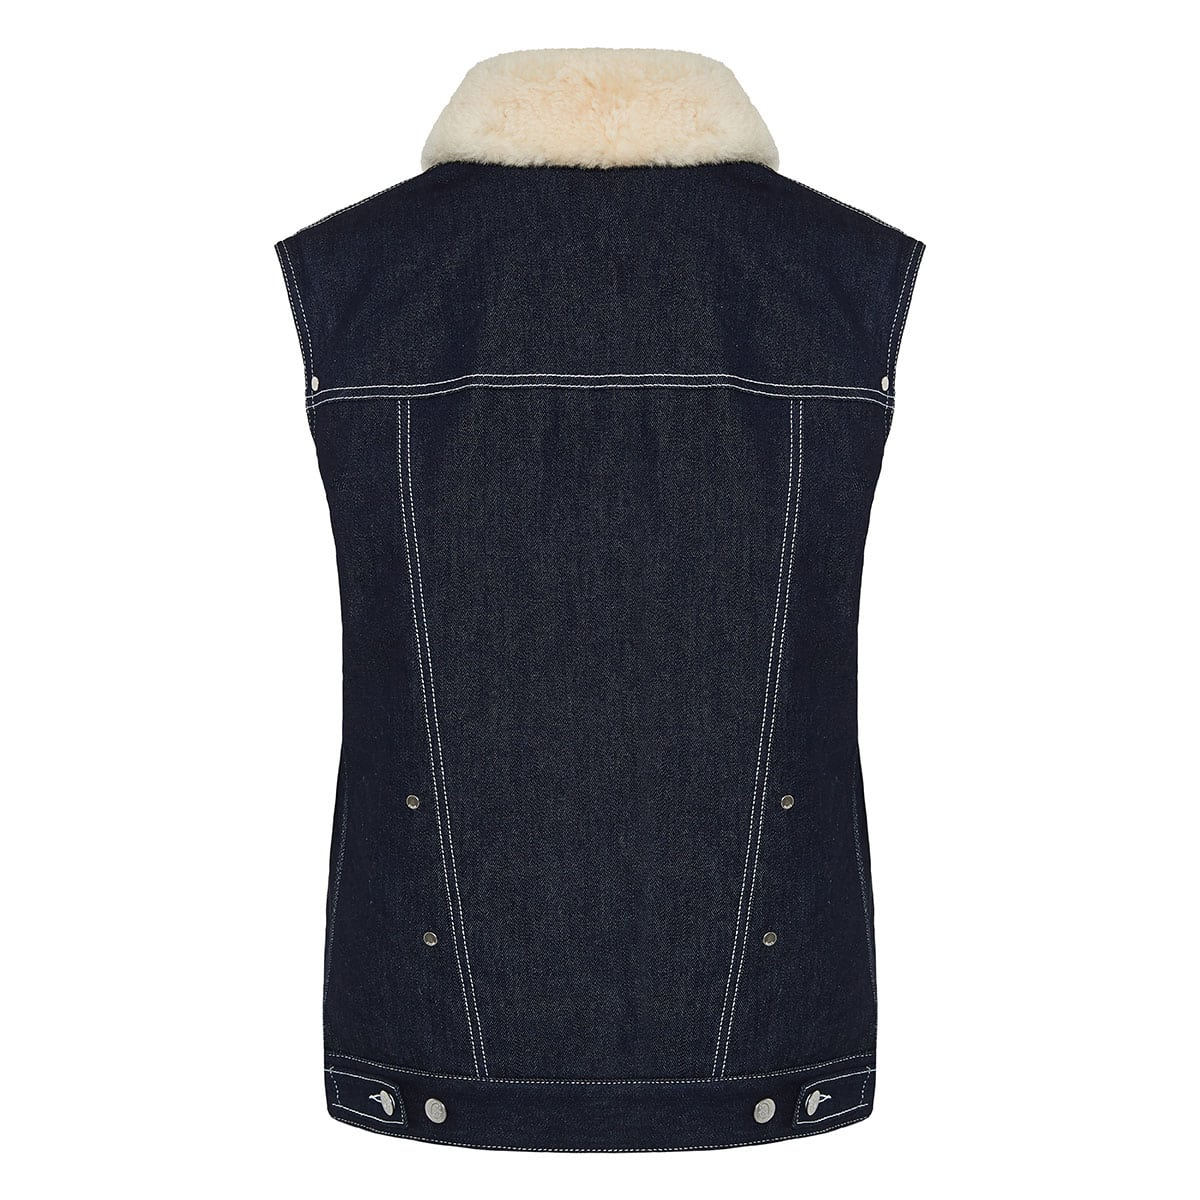 Fur-trimmed denim gilet jacket